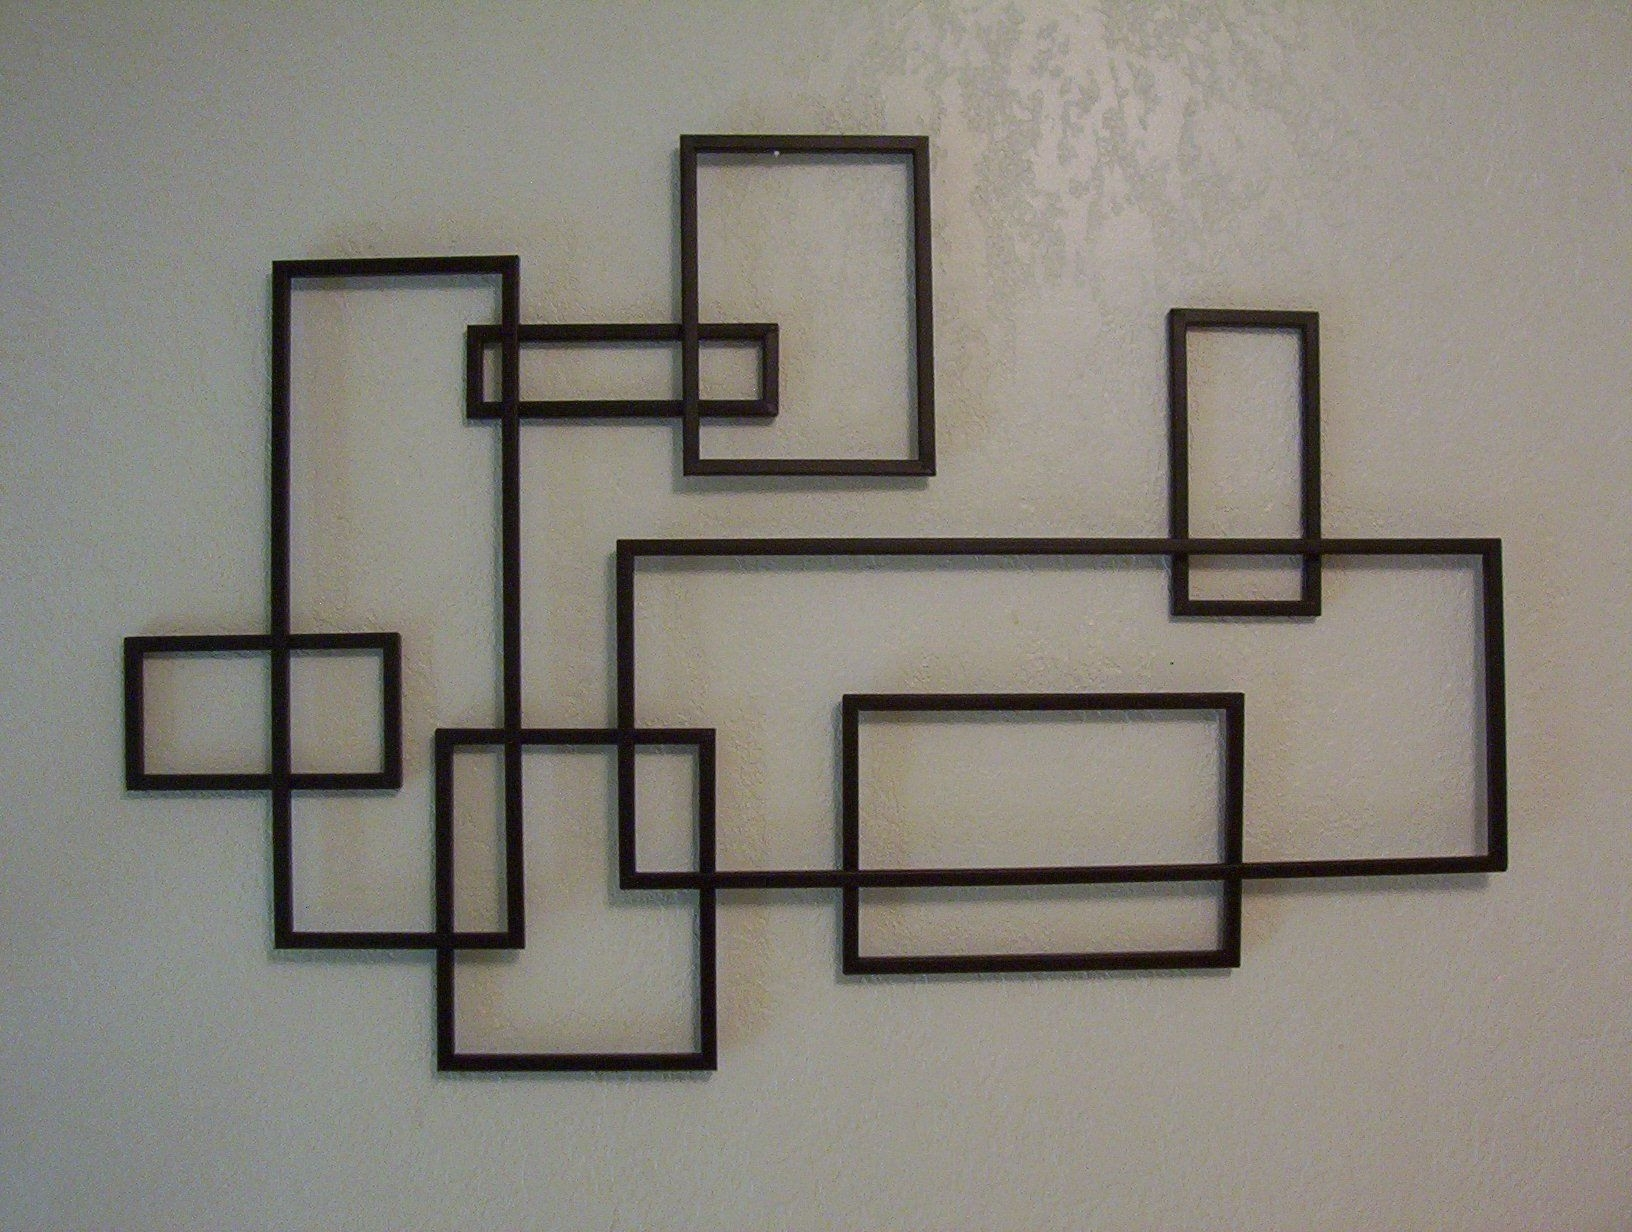 Mid Century Modern ~ De Stijl Style Geometric Metal Wall Sculpture within Mid Century Modern Wall Art (Image 17 of 20)